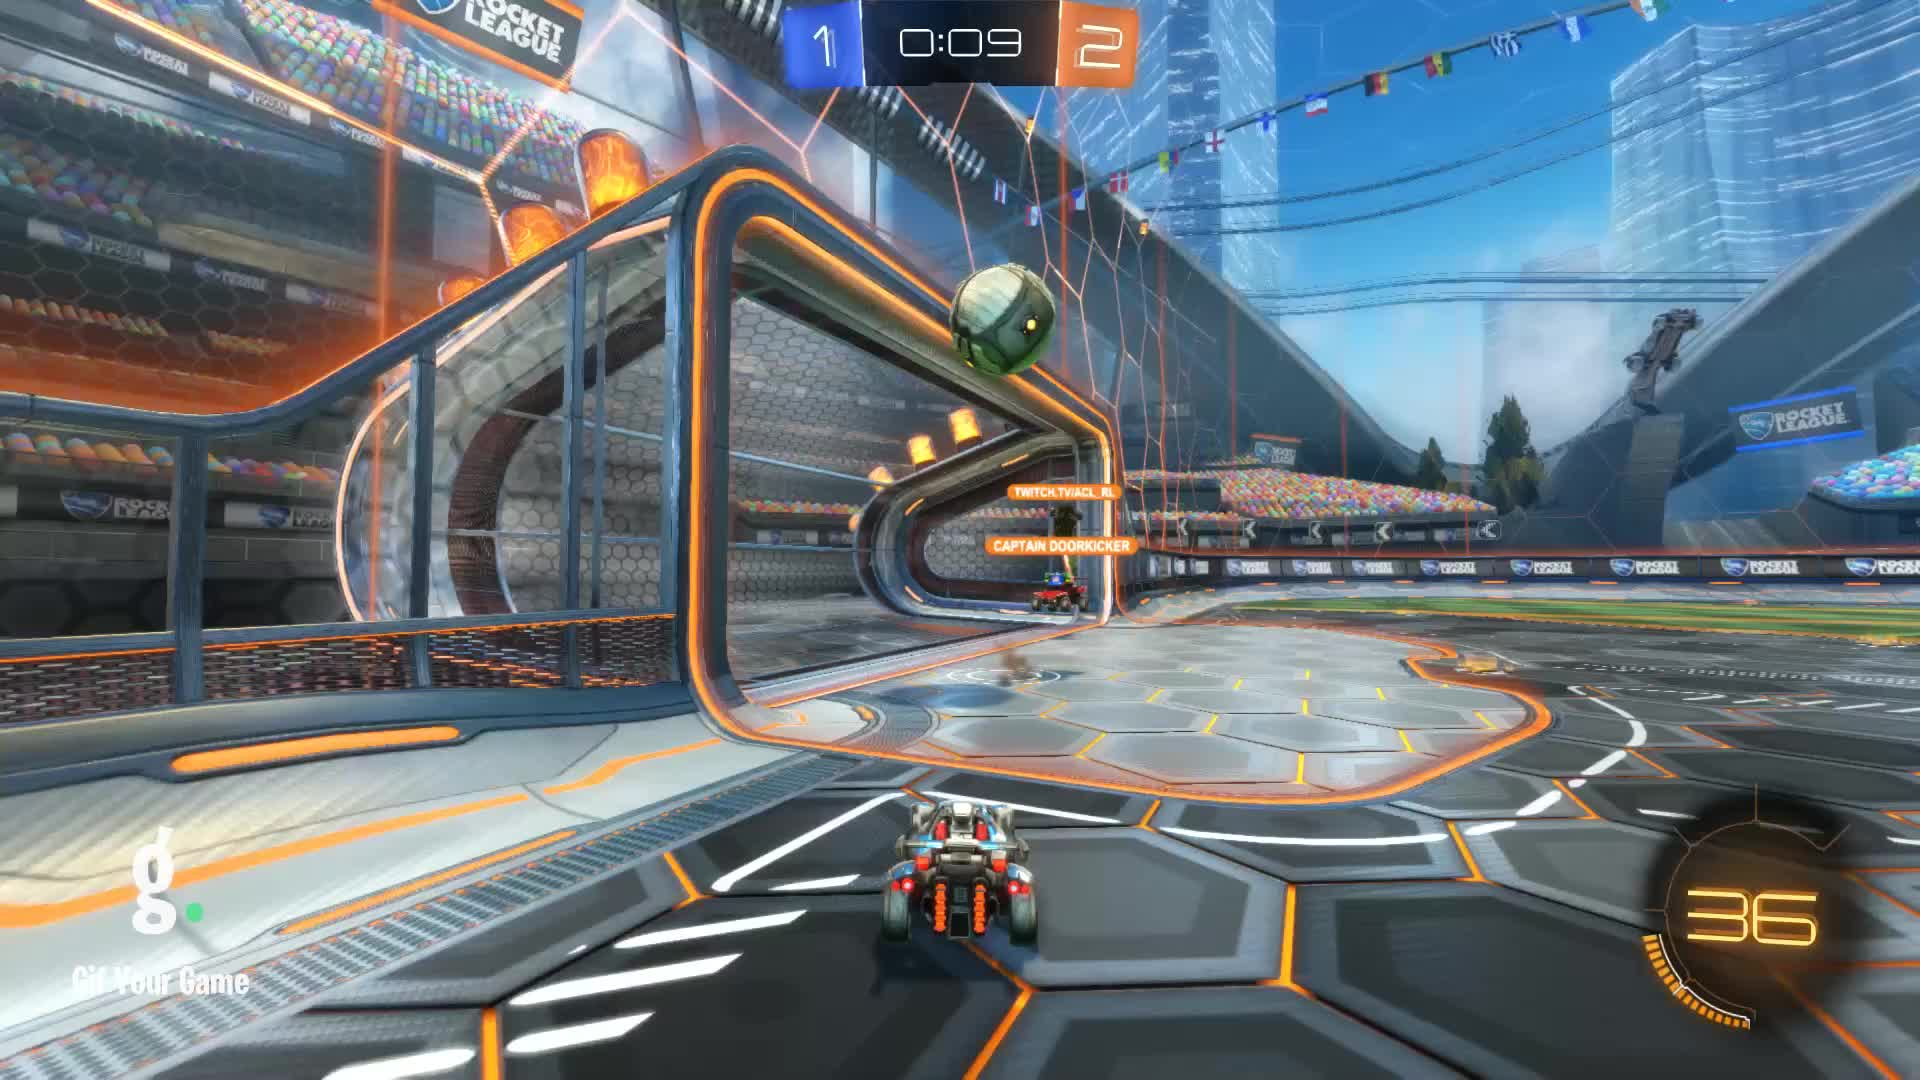 Gif Your Game, GifYourGame, RicePowah^-^, Rocket League, RocketLeague, Save, Save 9: RicePowah^-^ GIFs